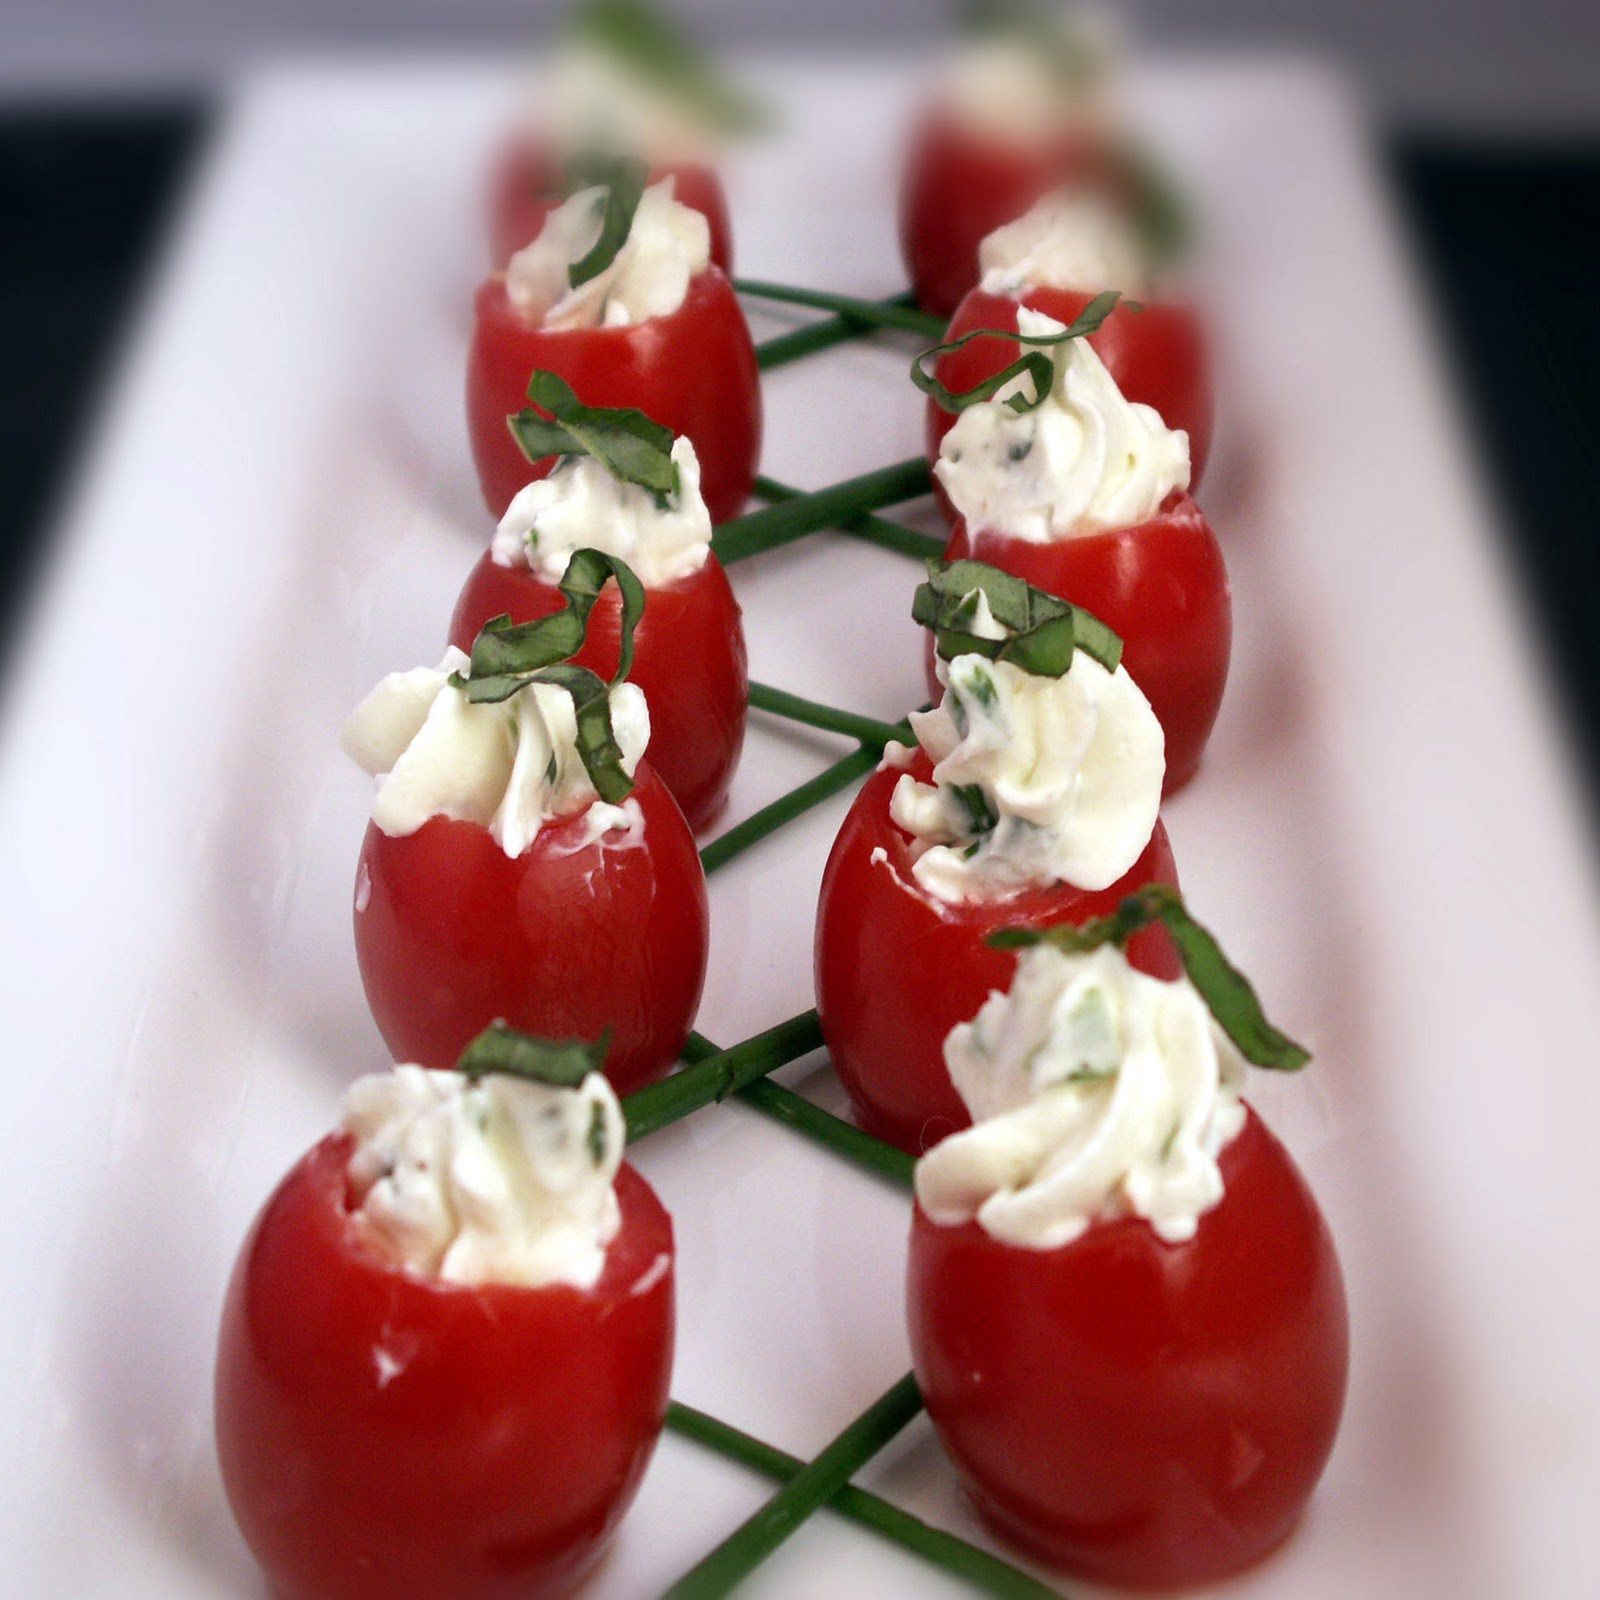 Gourmet Cooking For Two: Stuffed Cherry Tomatoes